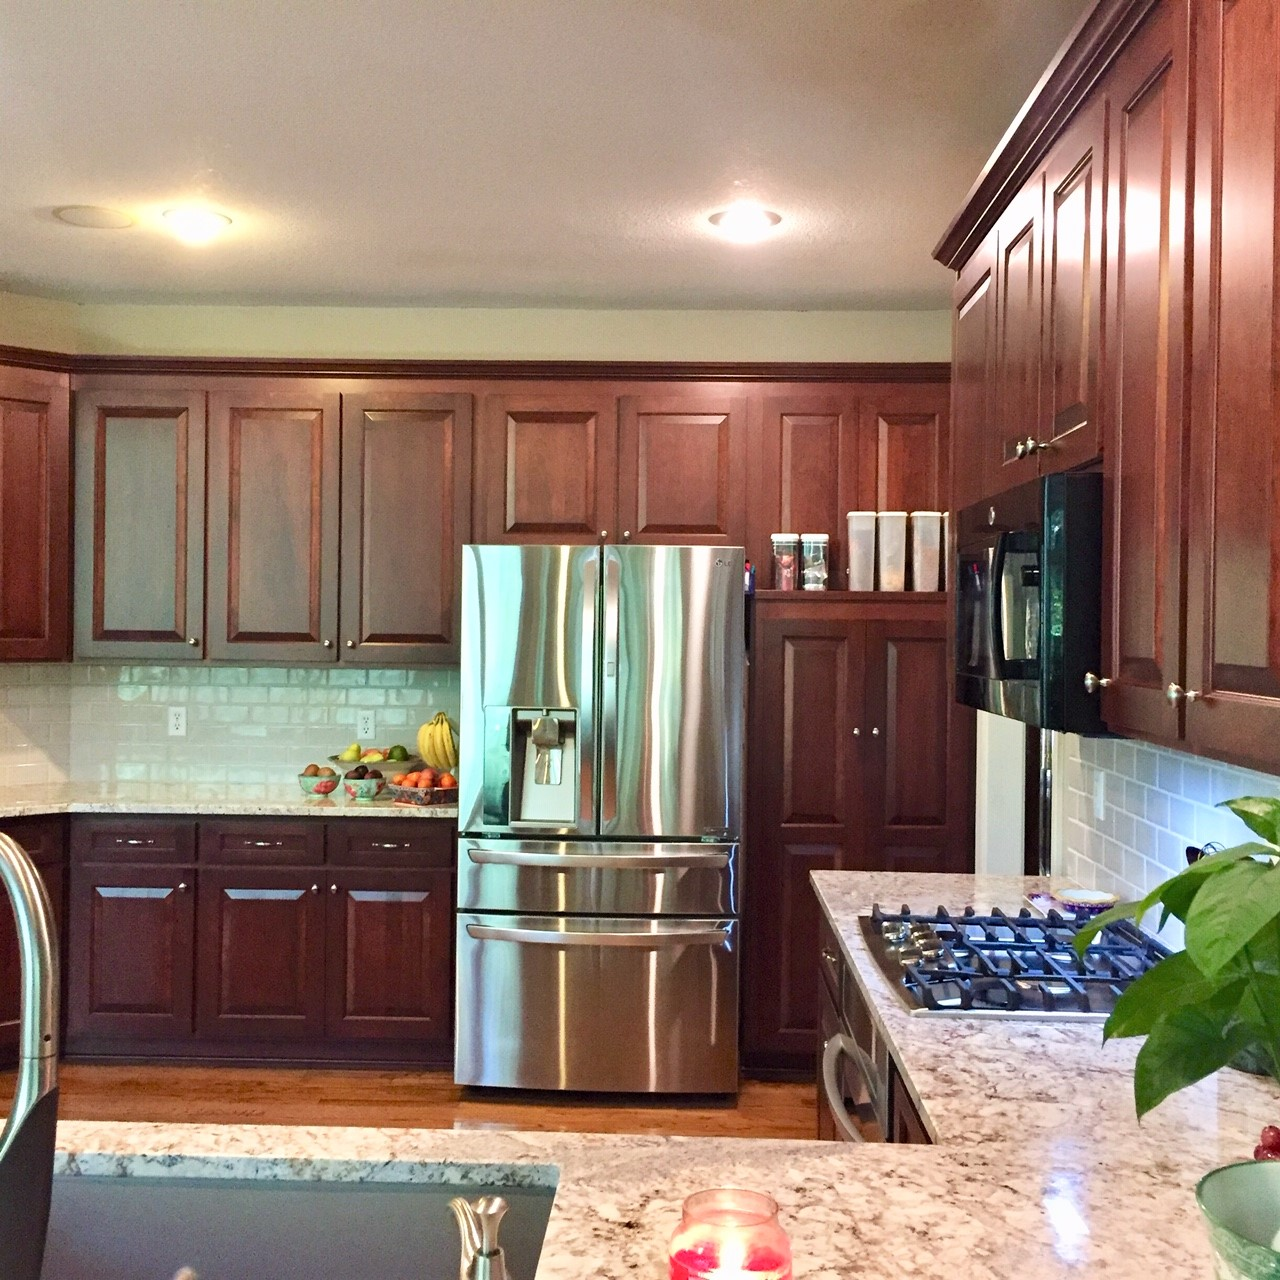 Cabinet Refacing Vs. Refinishing